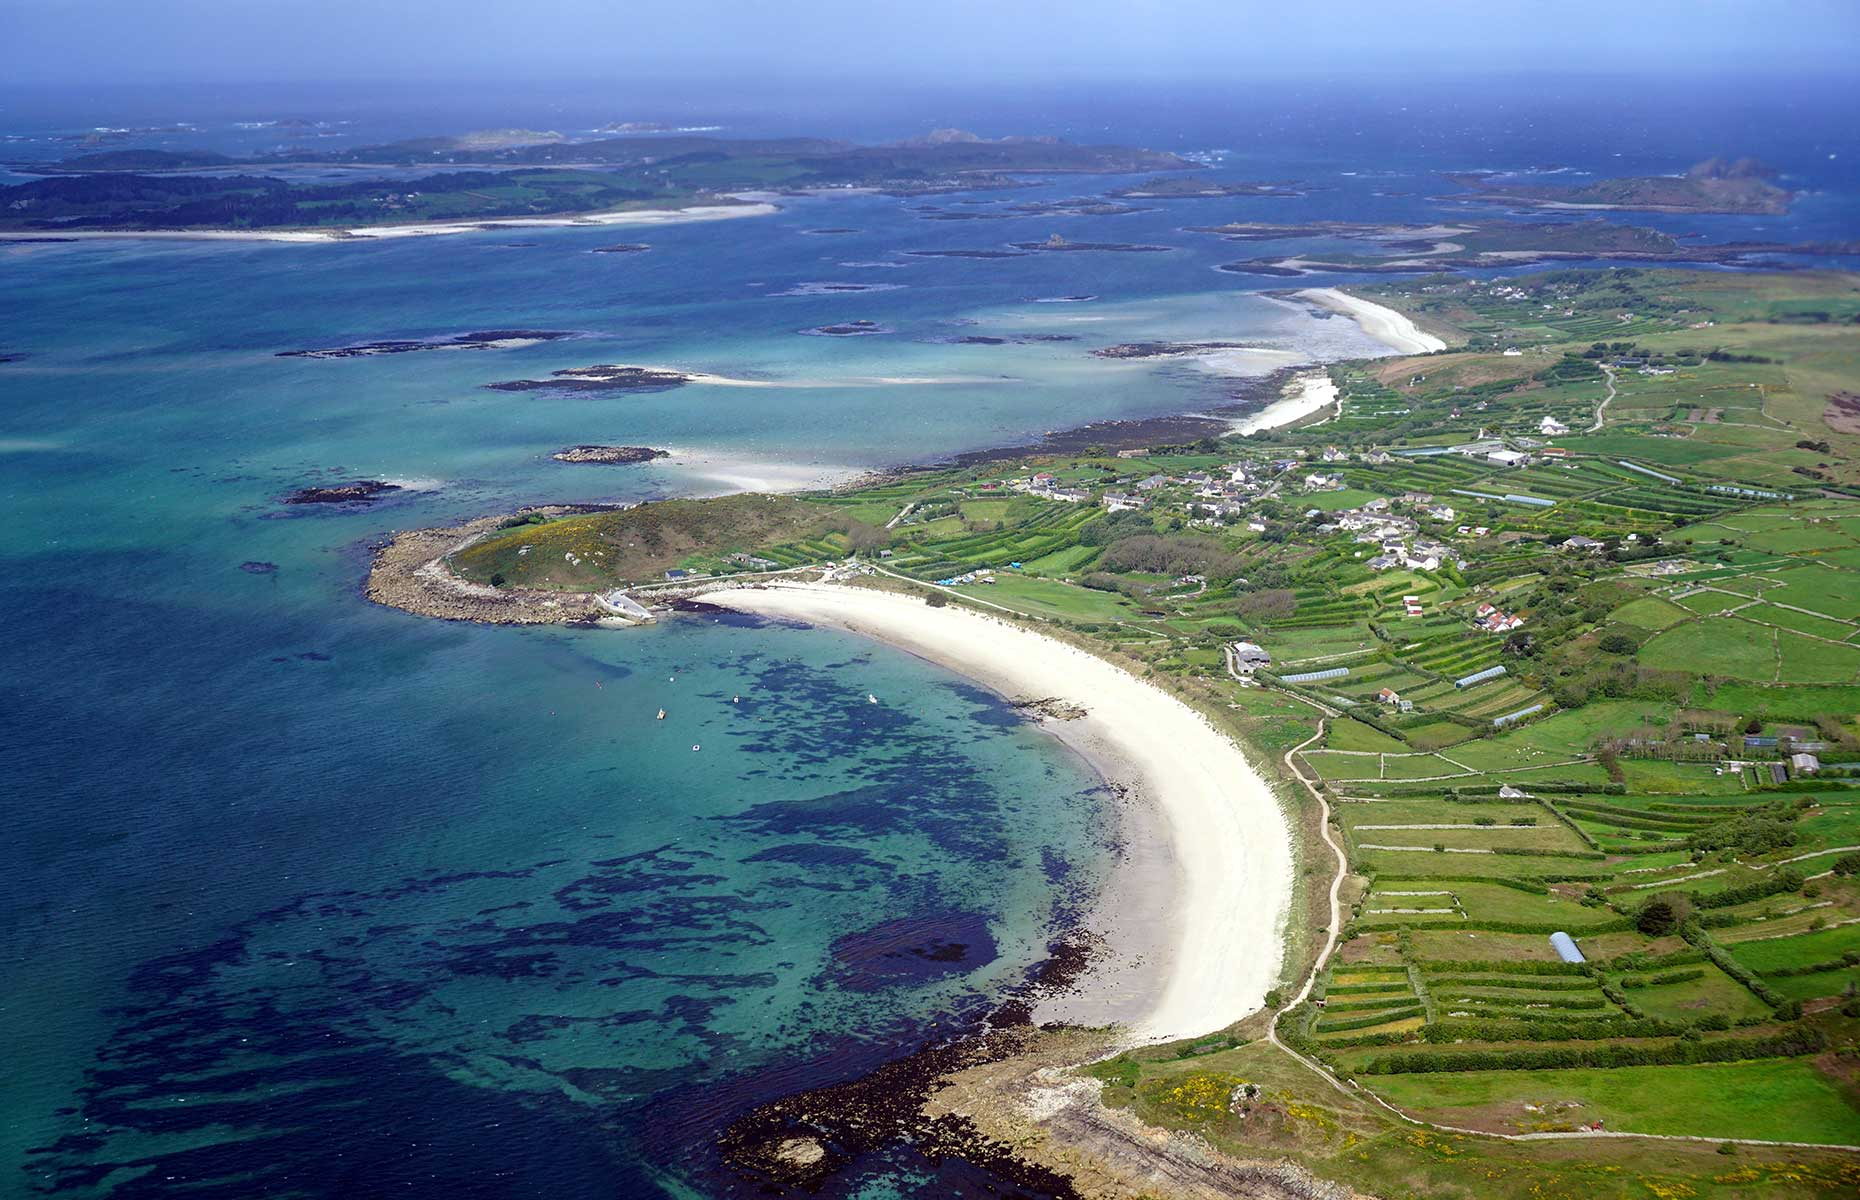 The island of St Martin's, Scilly Isles